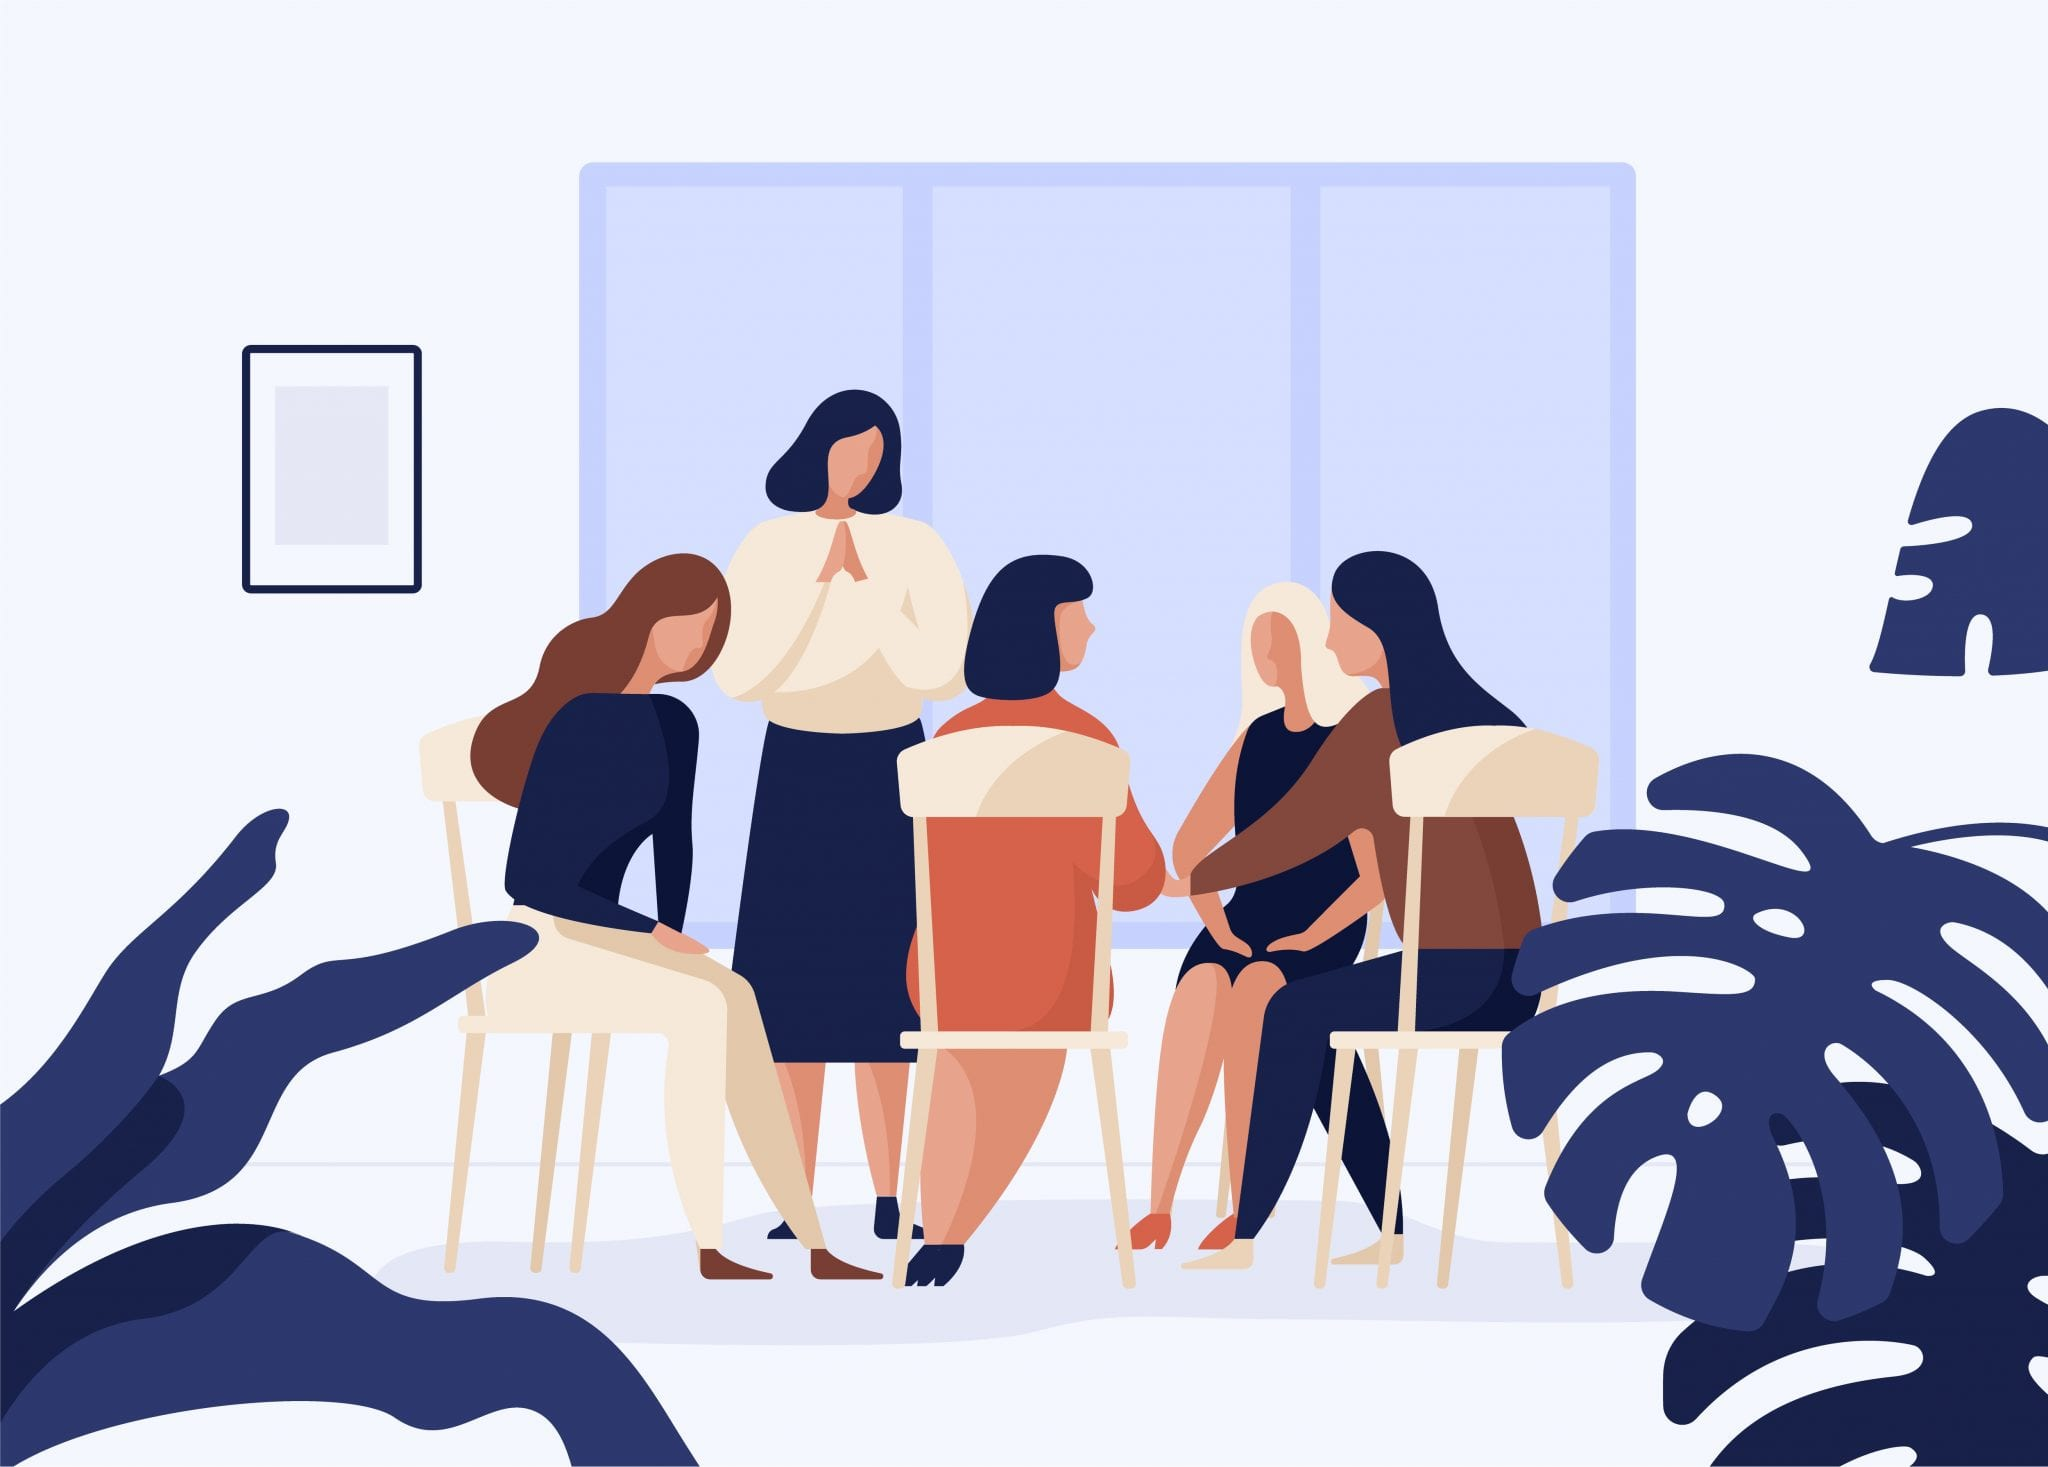 Female Characters Sitting on Chairs in Circle and Talking to Each Other. Group Therapy, Psychotherapeutic Meeting or Psychological Aid for Women.